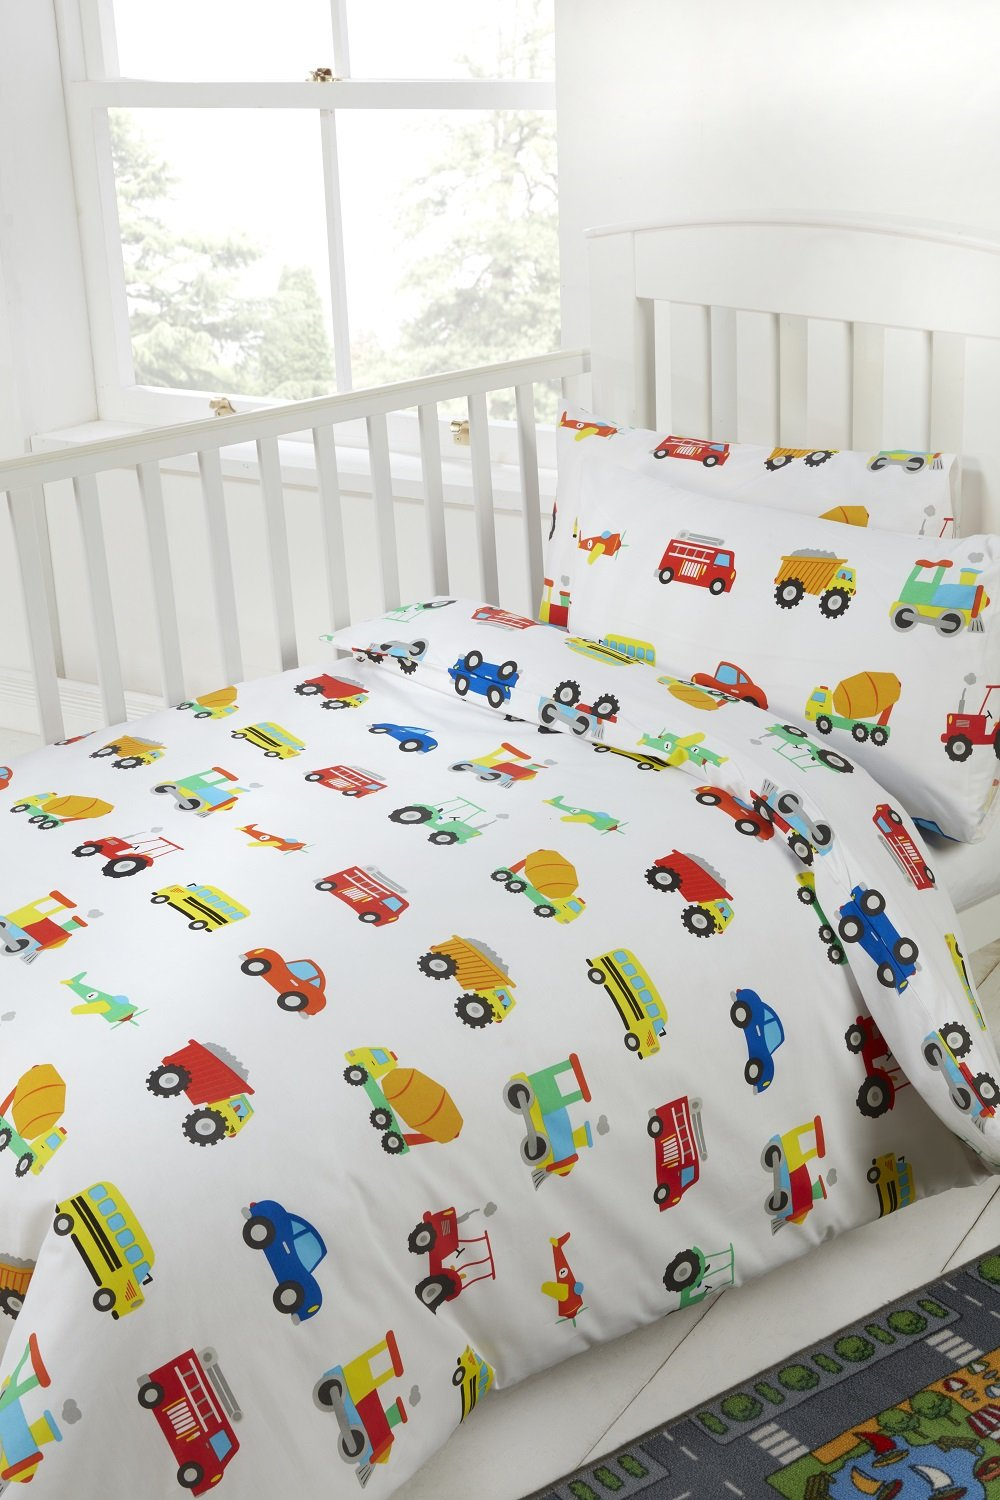 to bedding magnificent cover for sheet family your puppy bedroom bed duvet applied cute home concept set kids piece